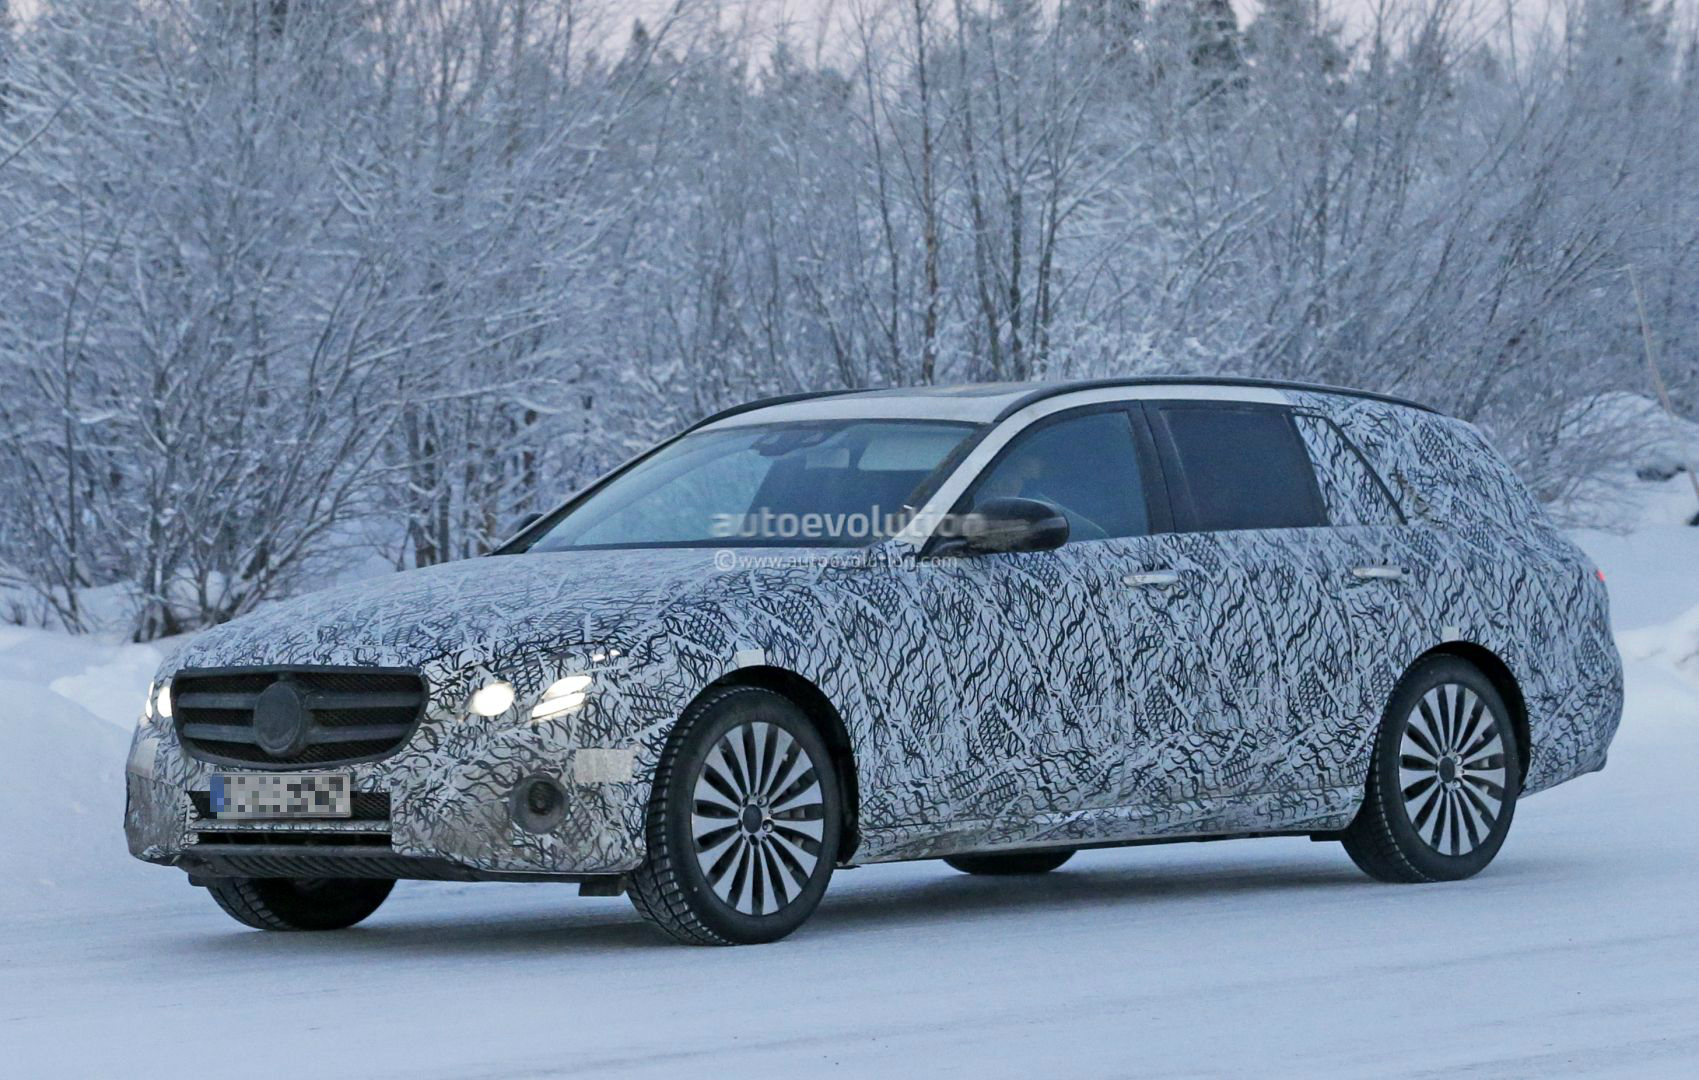 new mercedes e class wagon spied all terrain jacked up version rumored for 2017 autoevolution. Black Bedroom Furniture Sets. Home Design Ideas